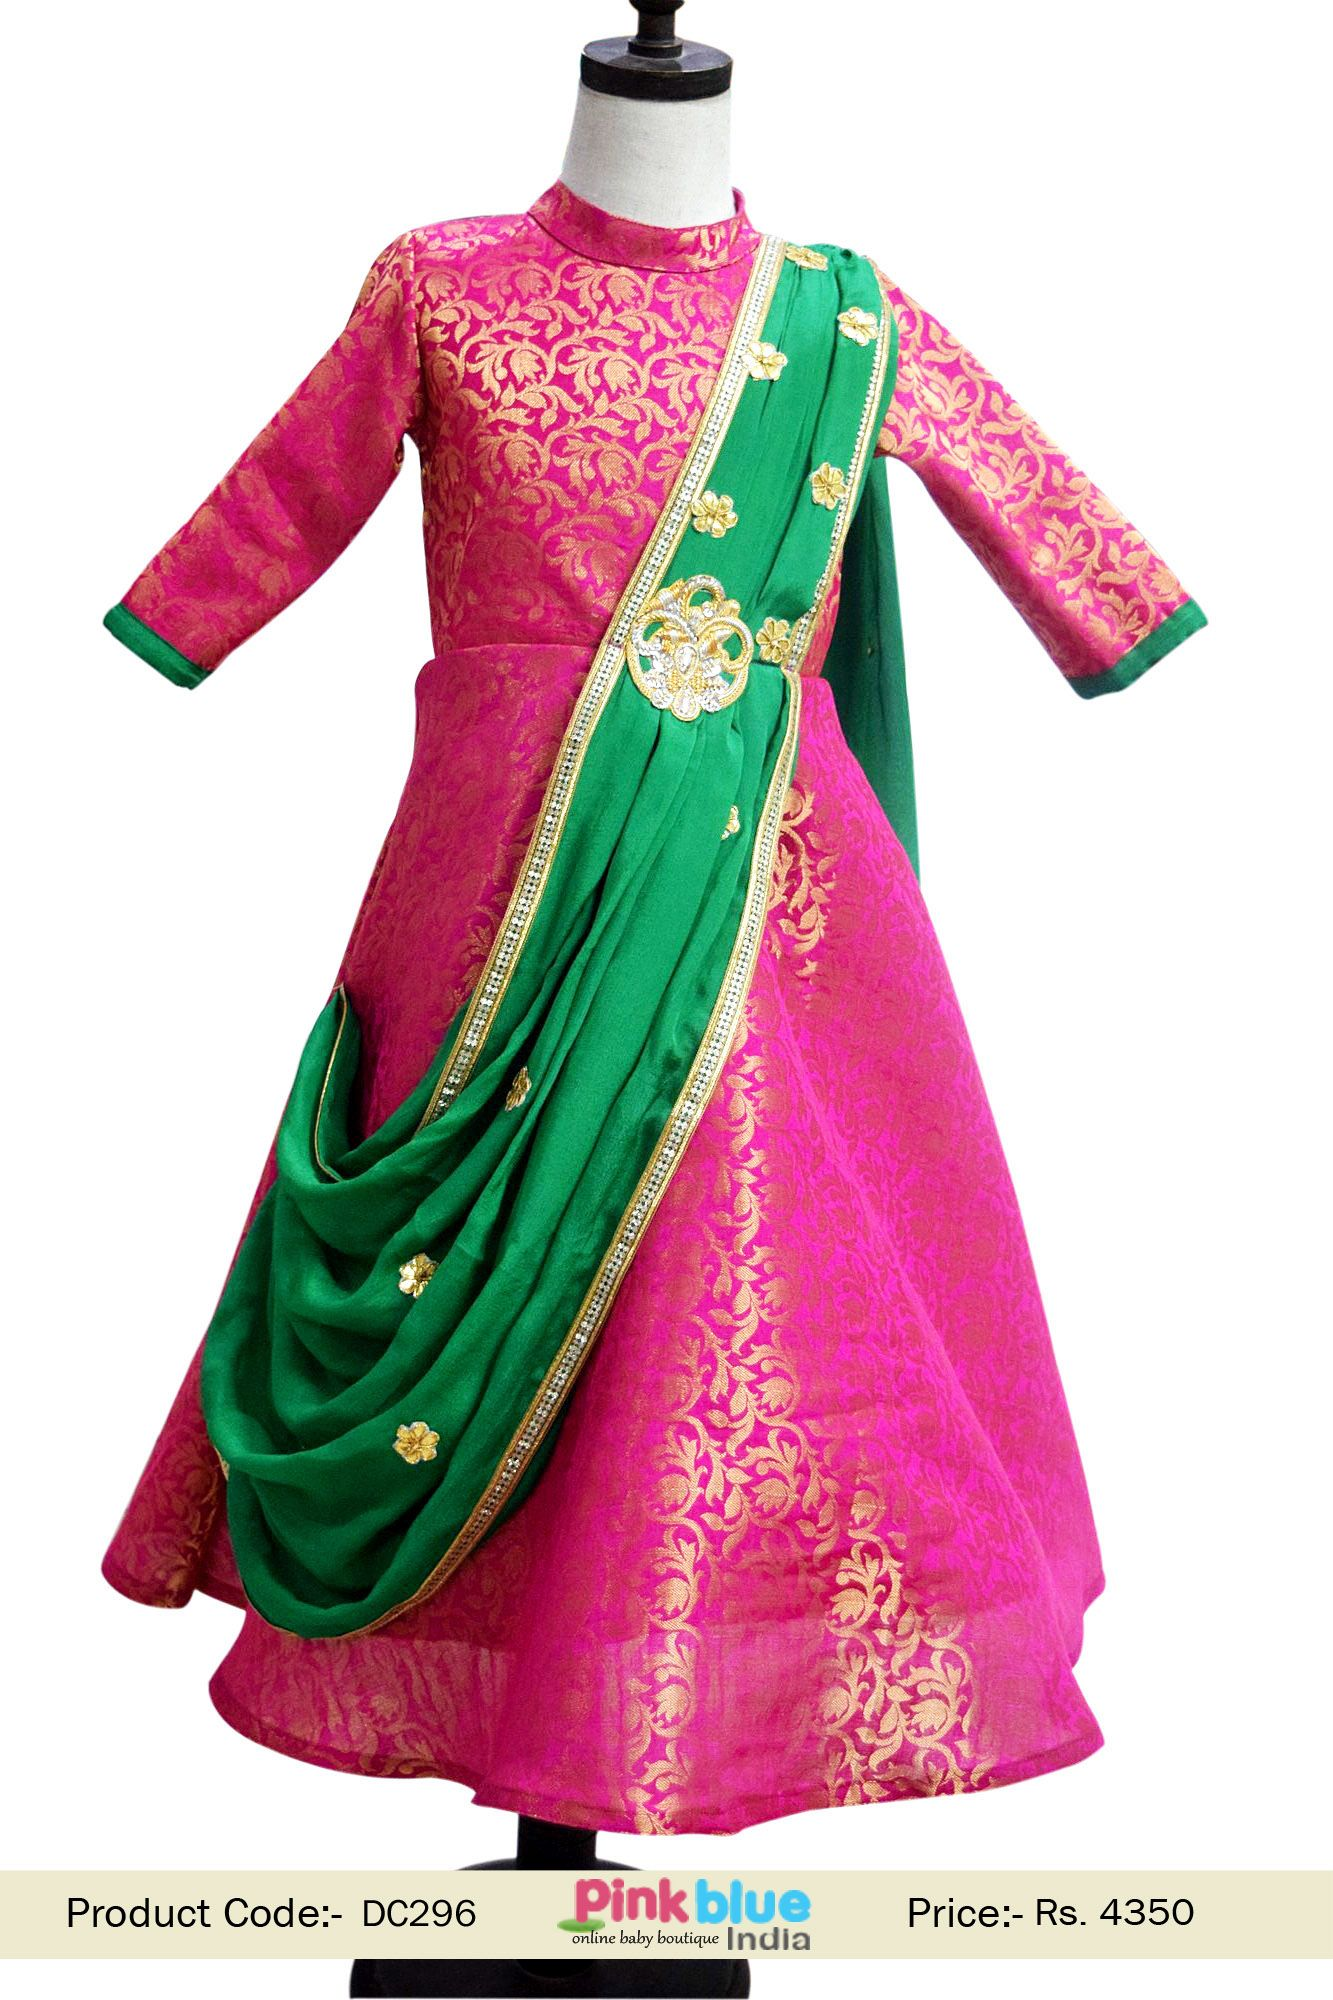 38659d167e7ea Designer kids ethnic wear in pink color - Exclusive Baby Girl Indo western  style gown for indian weddings and festivals. customized dress #ethnicwear  ...